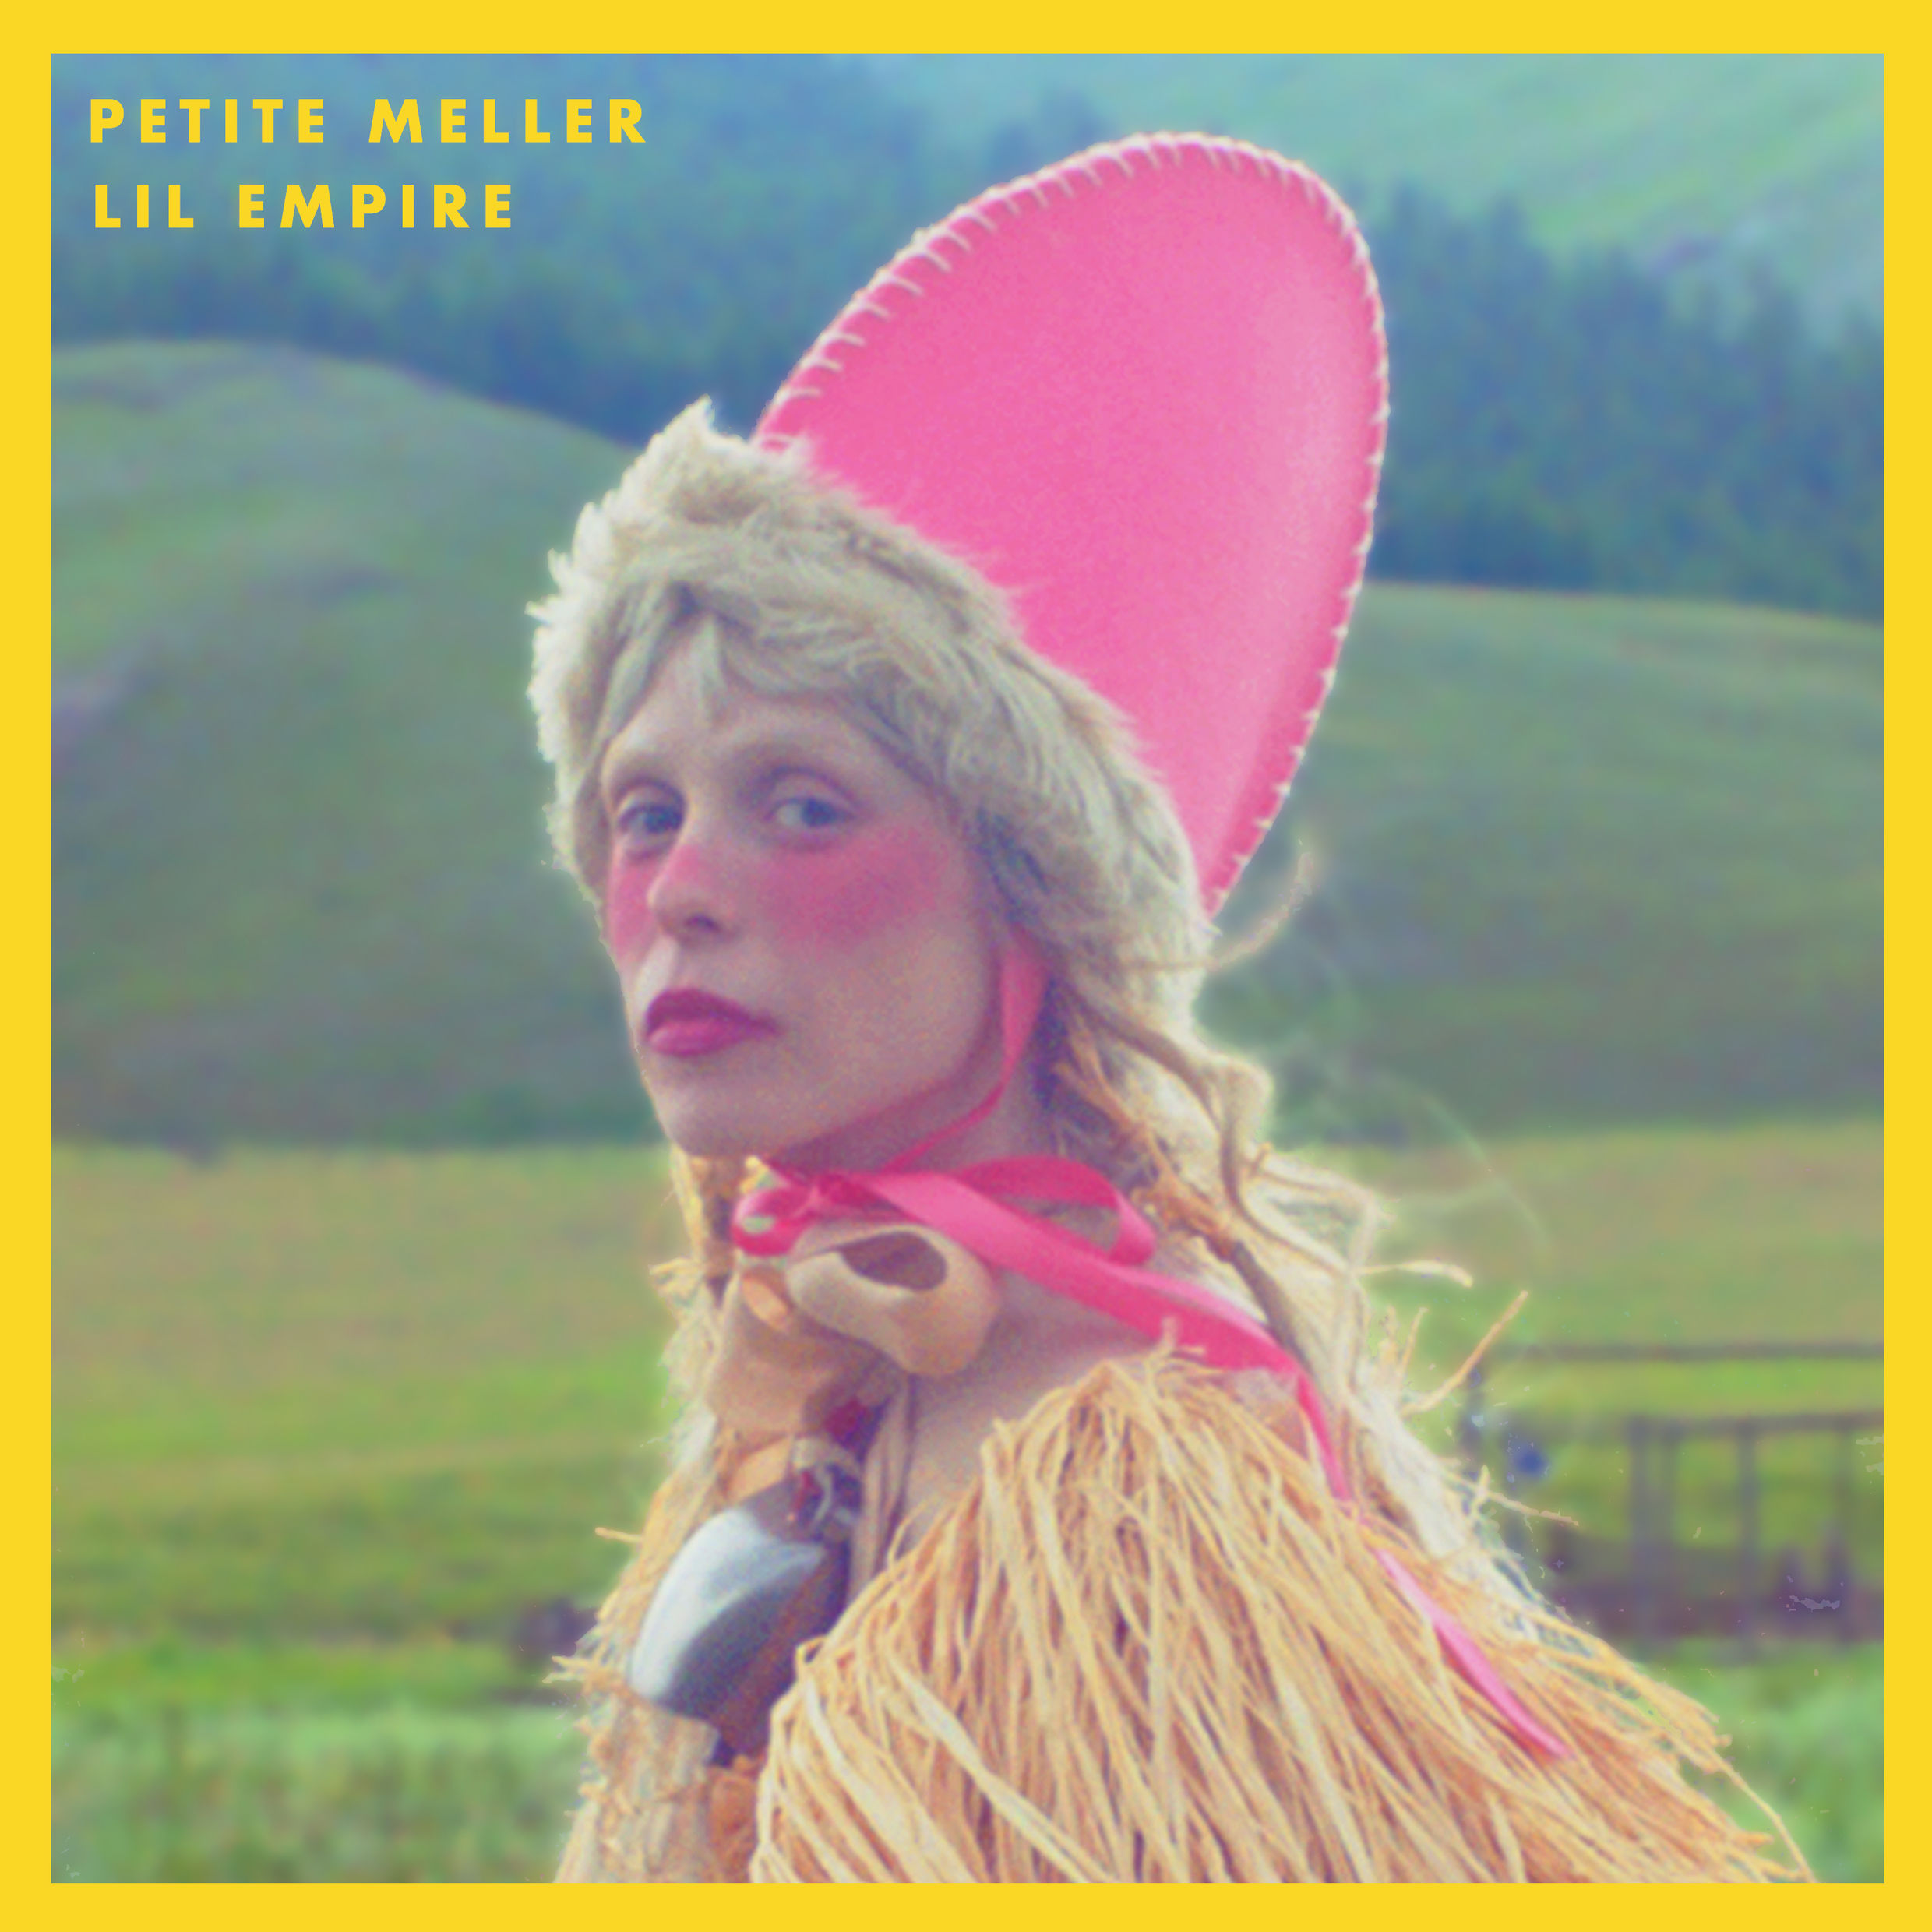 Jasper's Purchase Of The Week // Petite Meller / Bayonne / Aluna George